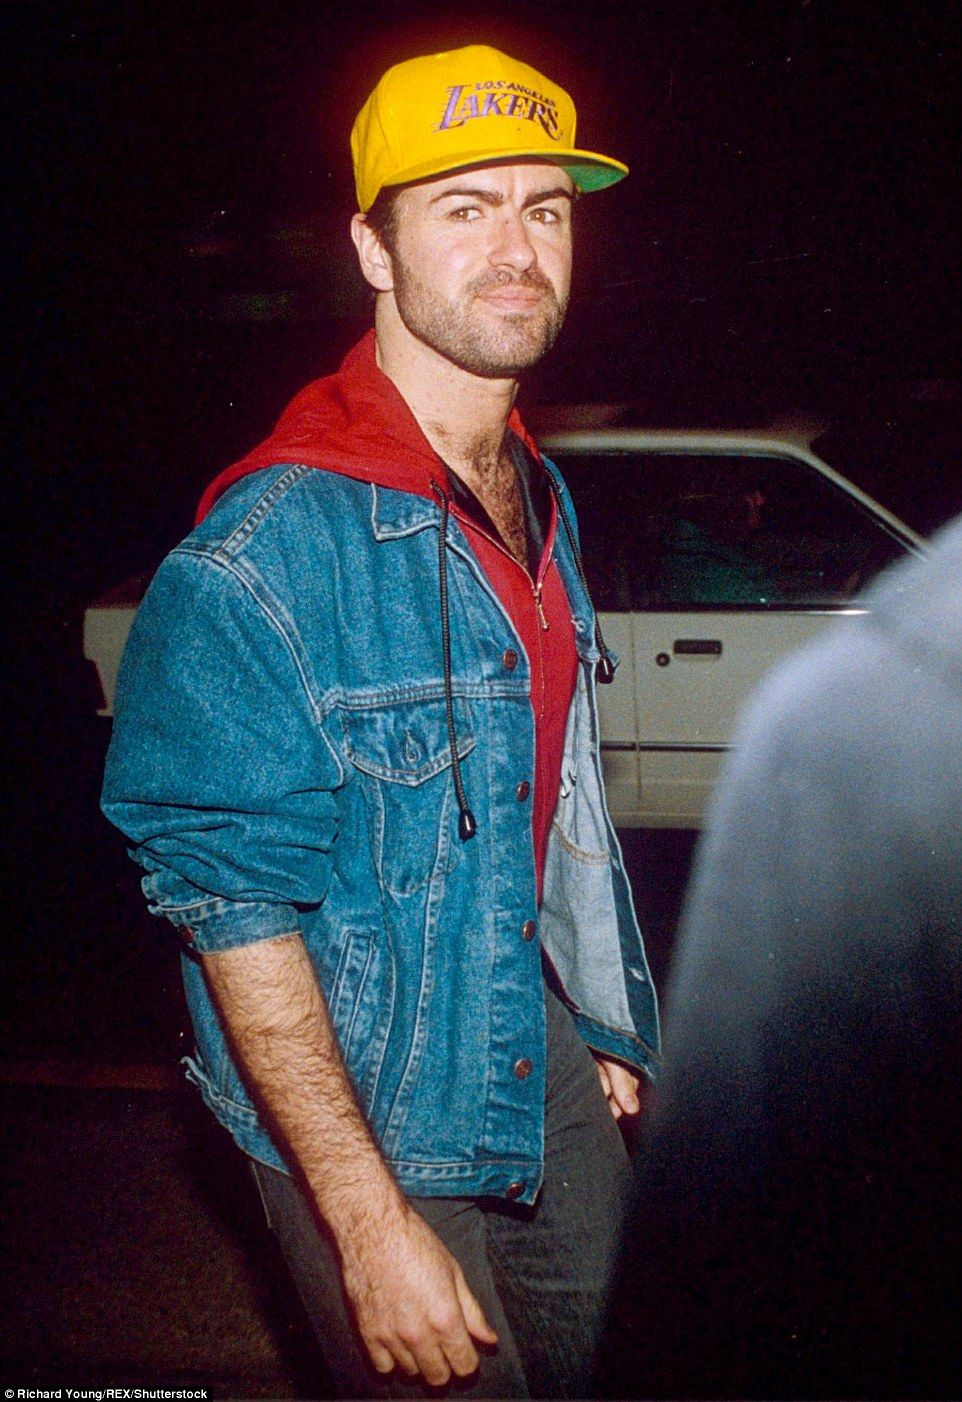 George Michael was wearing a Los Angeles Lakers baseball hat when he  attended a party for the War of the Roses film in London in 1990 1b9c6687ccf